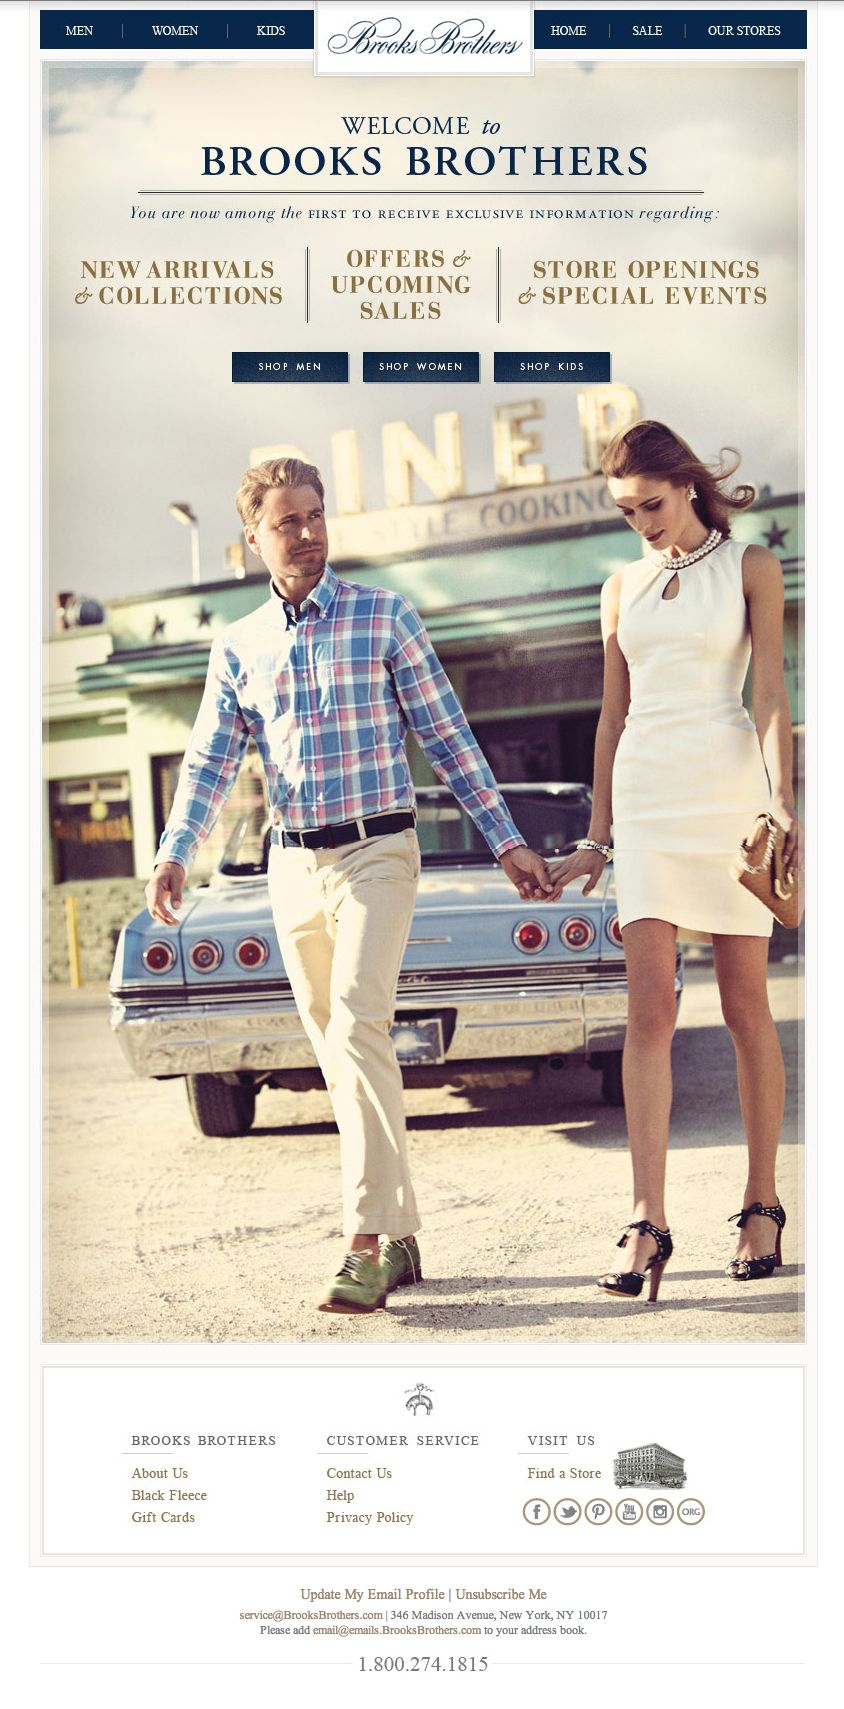 newsletter Brooks Brothers 07.2013 Subject